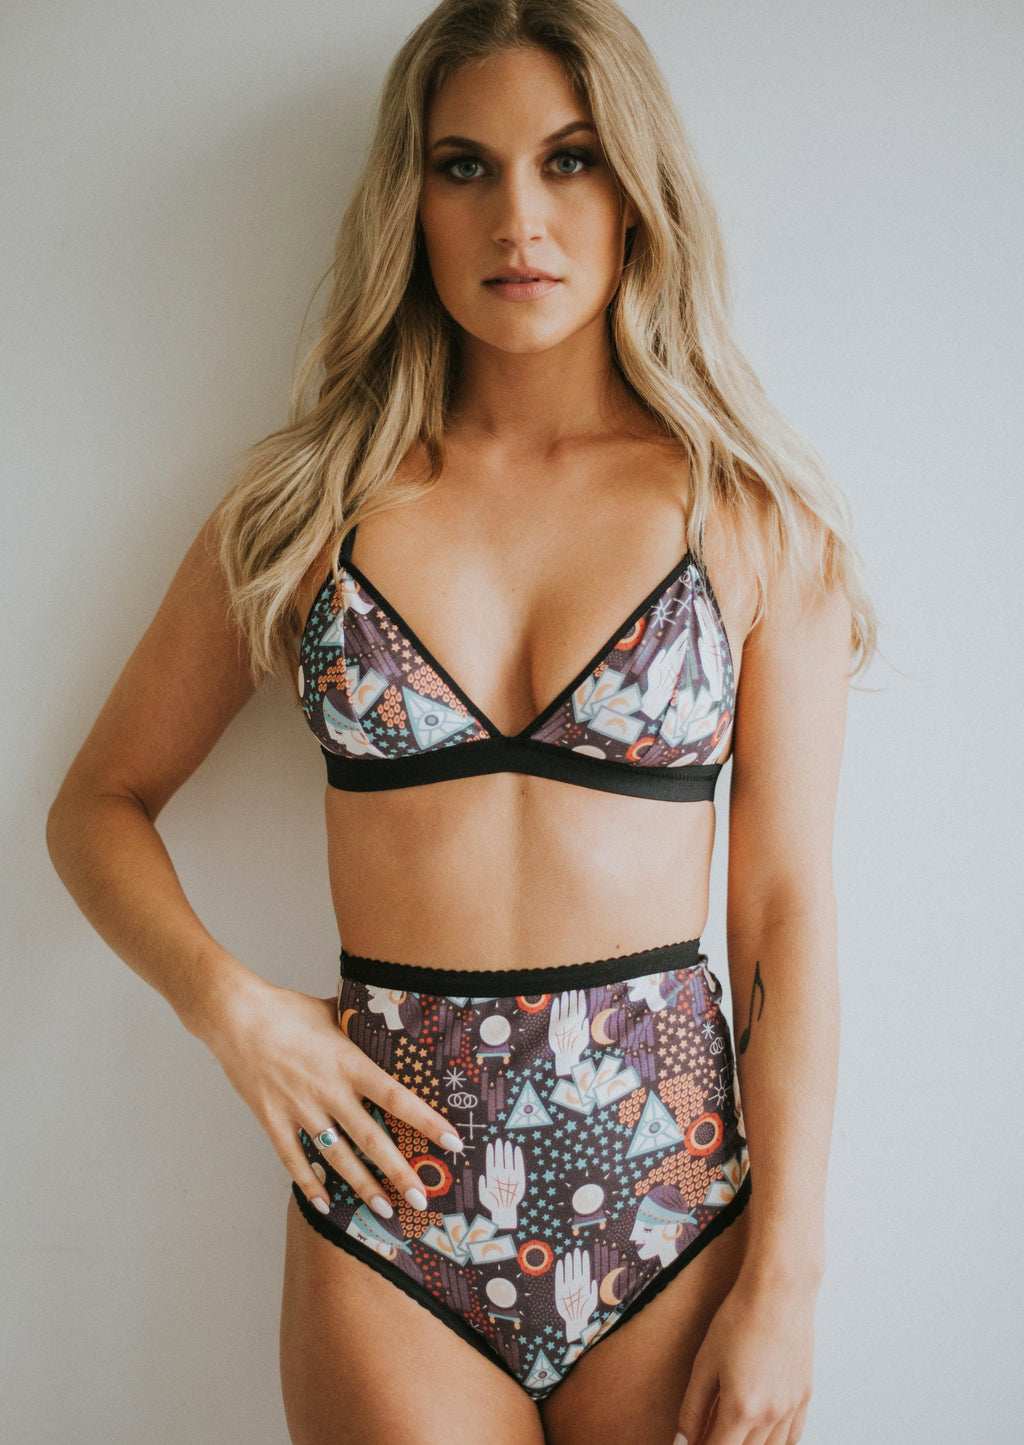 Tarot Bralette | Fortuner teller print cotton bralette by Coven Intimates